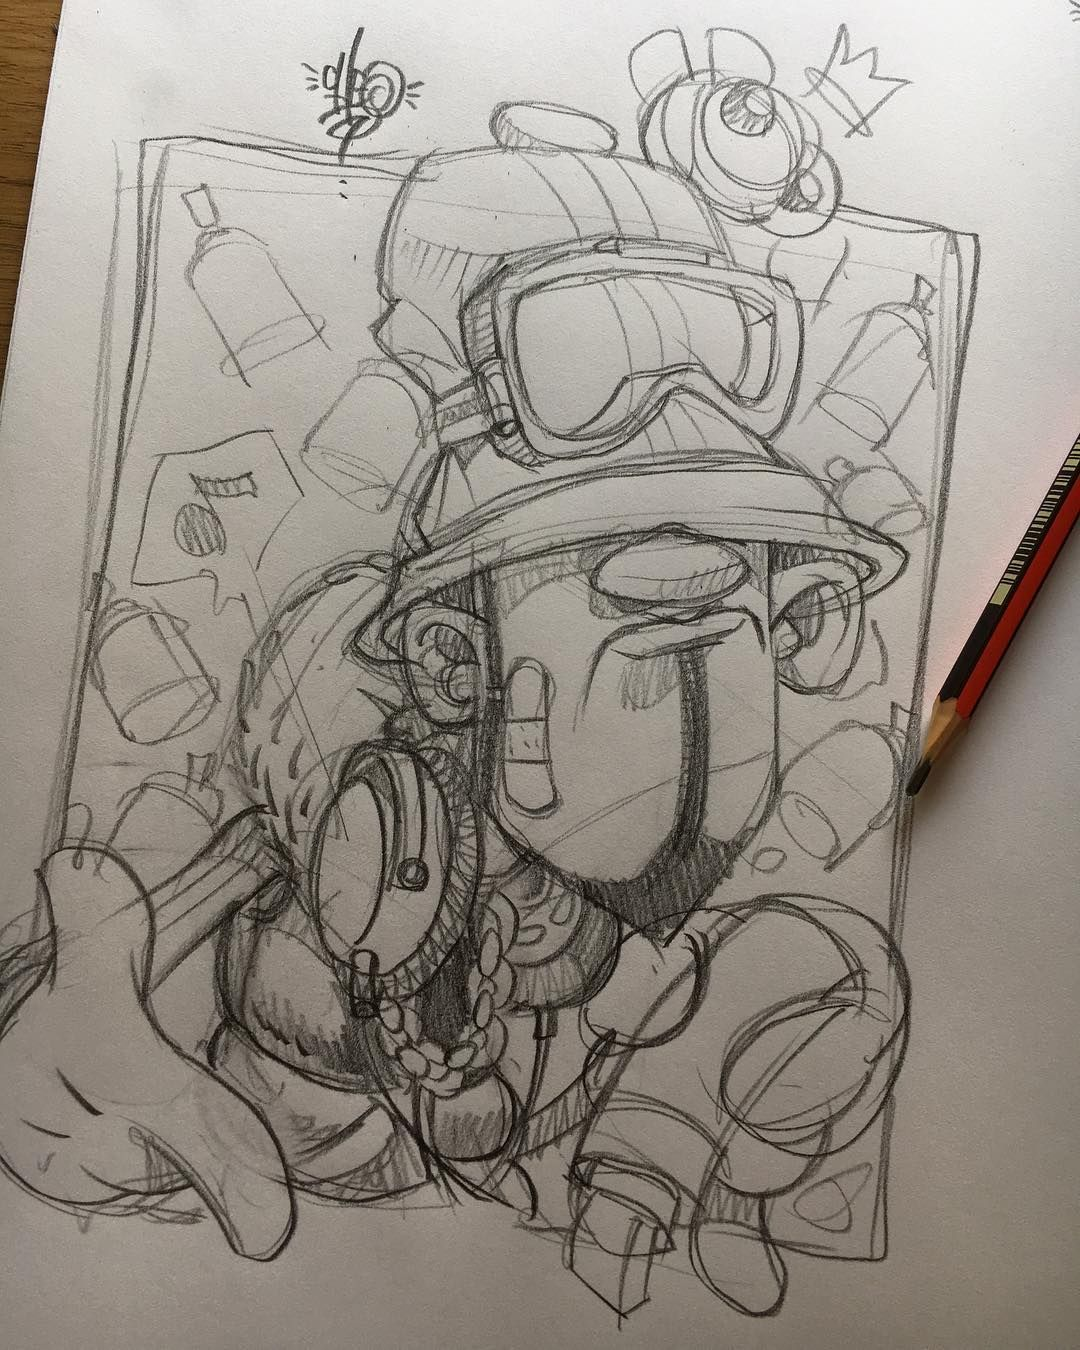 Character design · art sketchbook · pricking about cheo sketch graffiti images street art graffiti